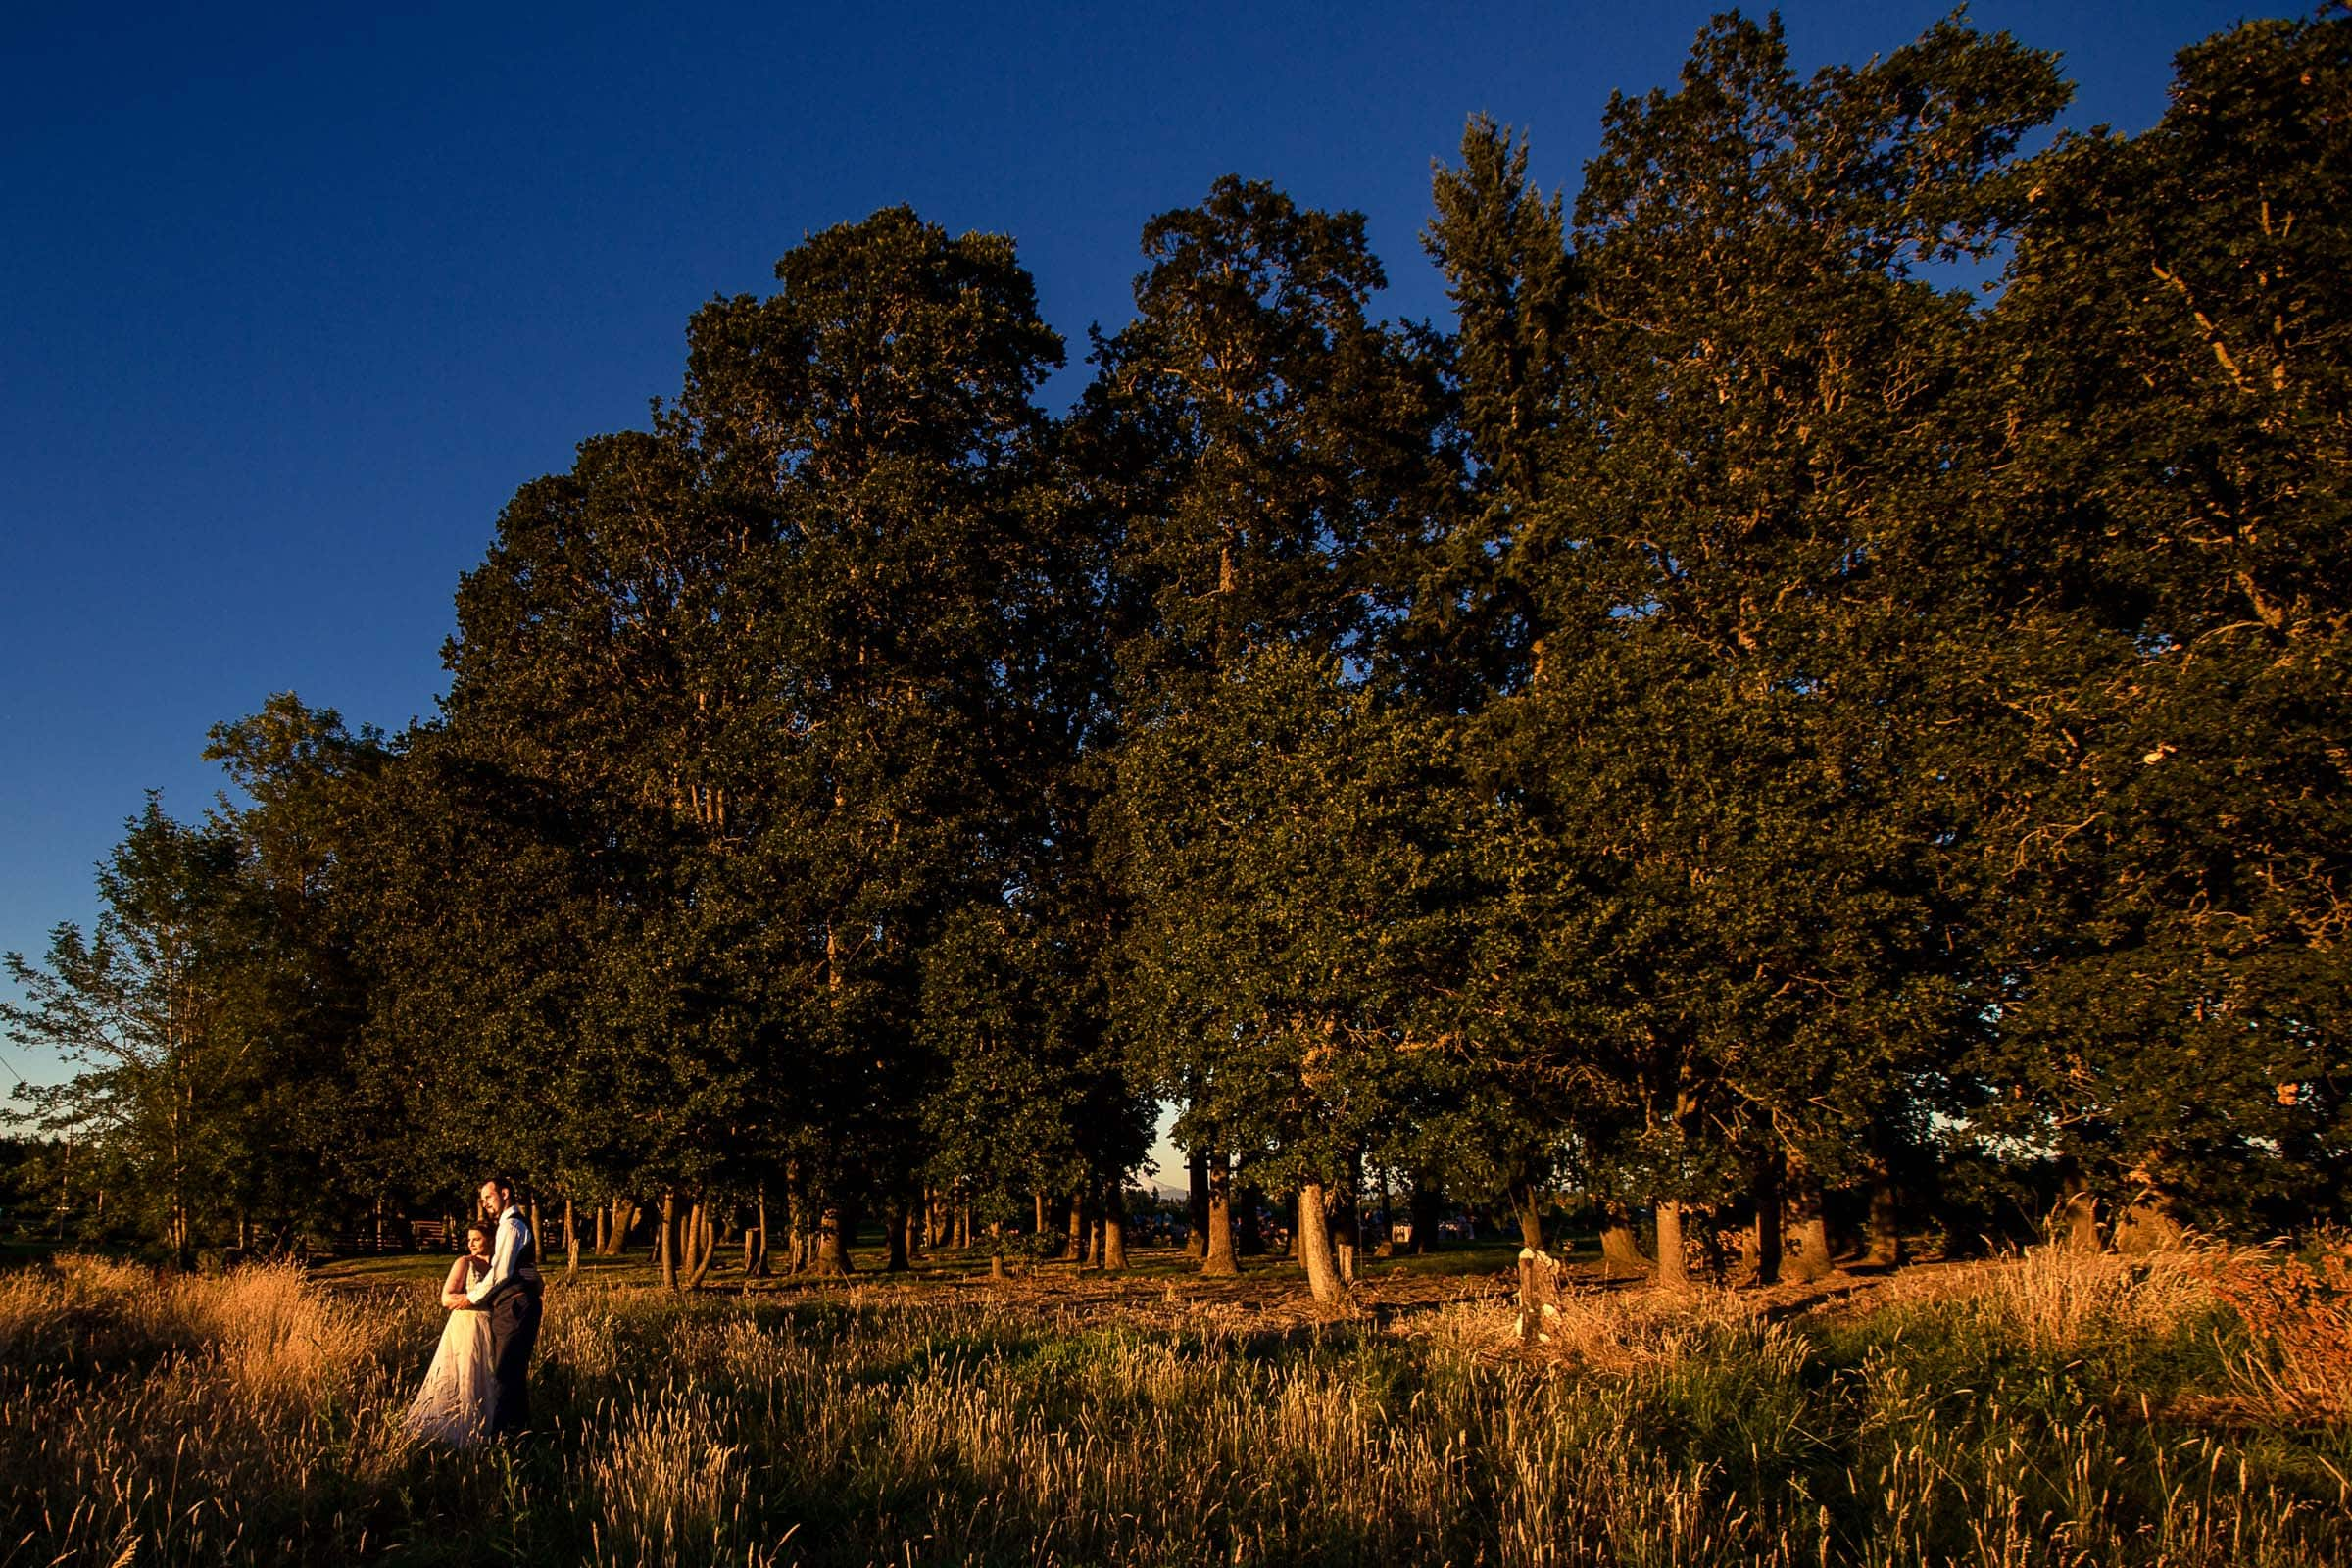 A wide angle view of the gorgeous Postlewait's Country wedding venue located in the heart of the Willamette Valley between Portland and Salem near Aurora, Oregon